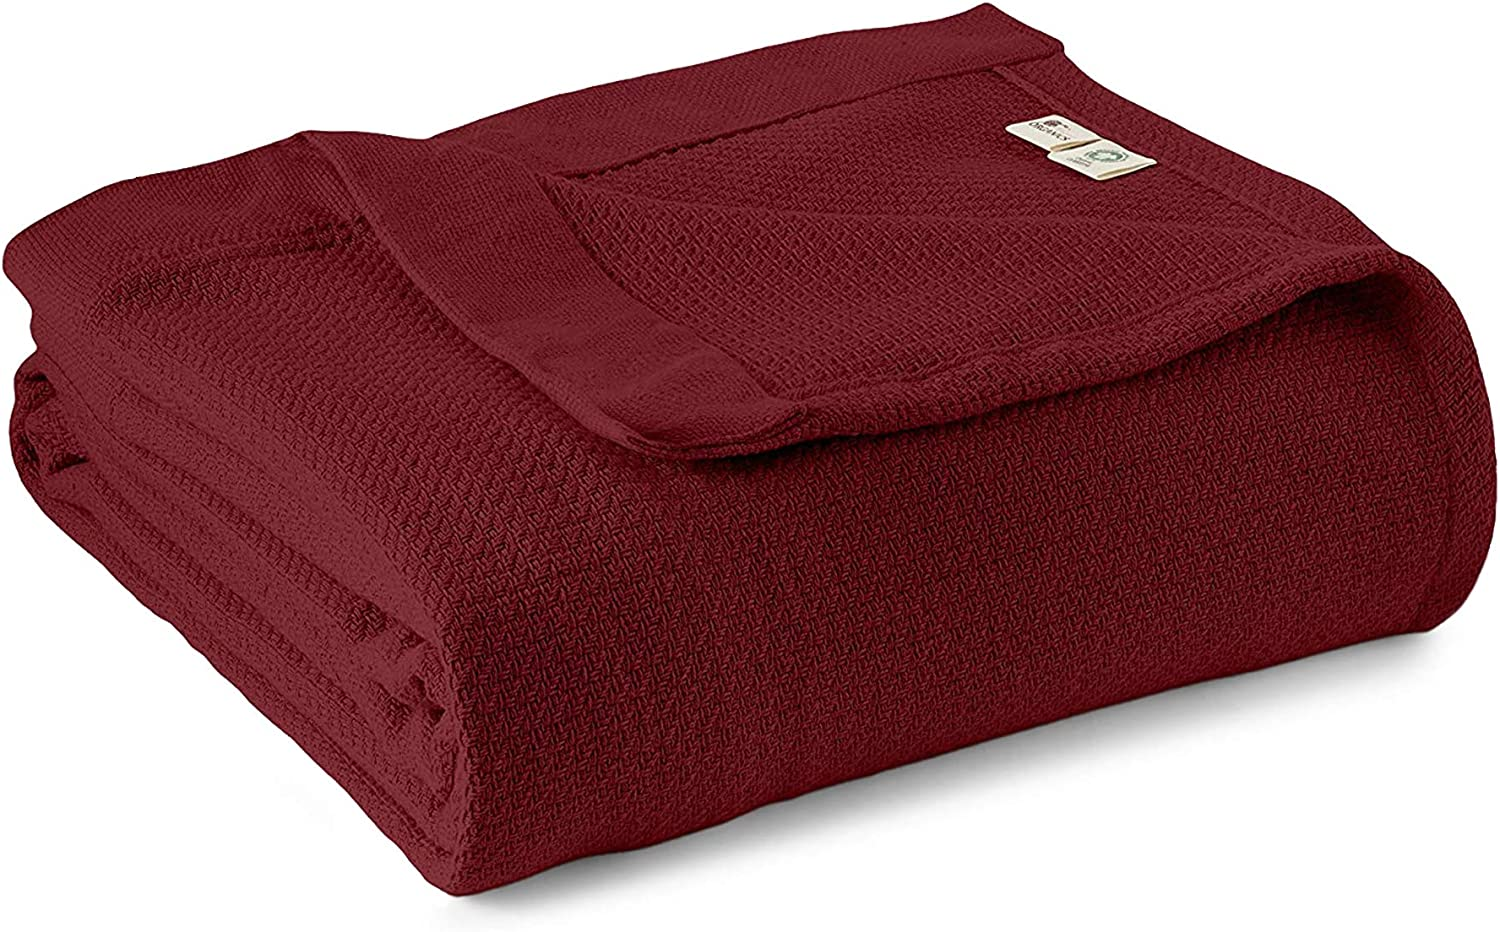 Whisper Organics 100% Cotton Blanket - Soft, Woven Cotton Blanket - Organic Cotton Blanket - Breathable Blanket for Bed - GOTS Certified Bed Blanket, 90